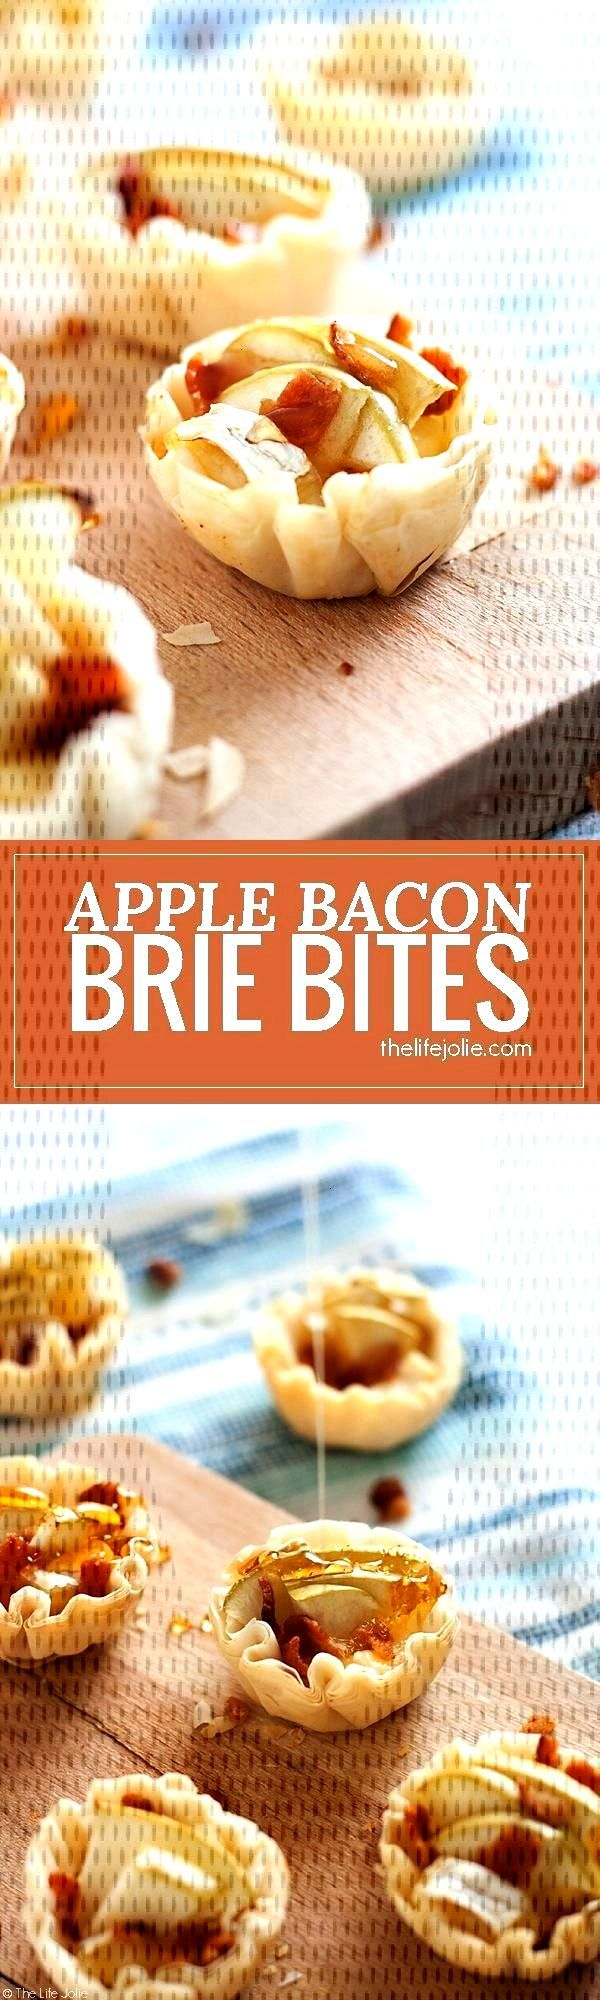 Apple Bacon Brie Bites ,  Apple Bacon Brie Bites ,